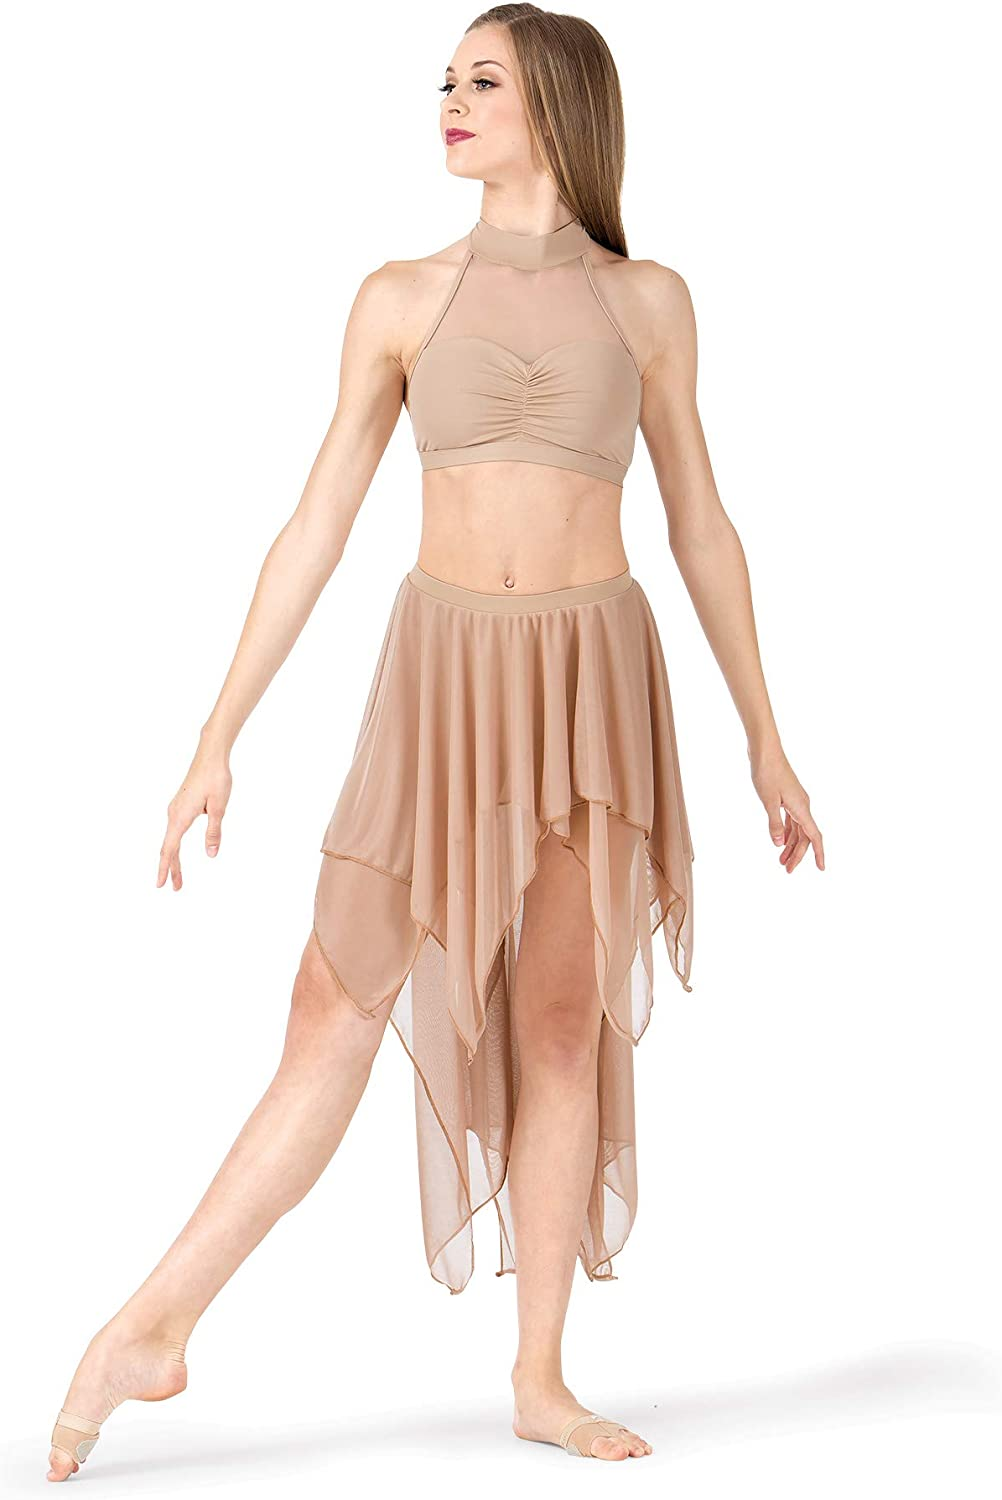 Body Wrappers Adult Double Layer High-Low Dance Skirt BW9115